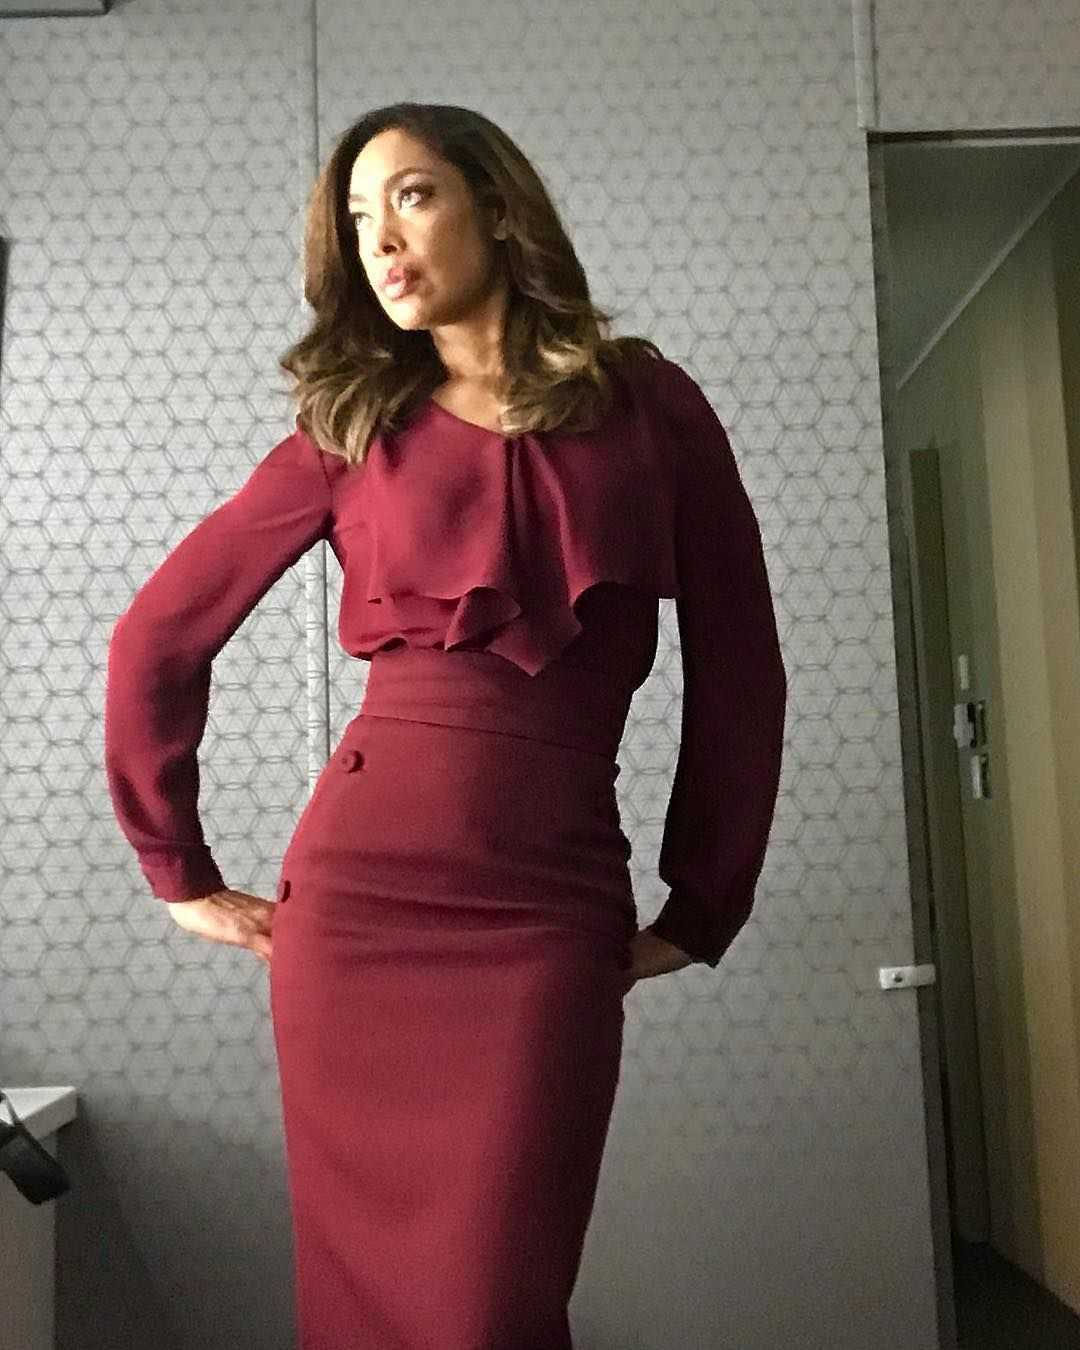 Gina Torres On Instagram Tbt To Just Before The Holidays And This Completely Gratuitous Trailerse Professional Dresses Business Dresses Business Dress Code